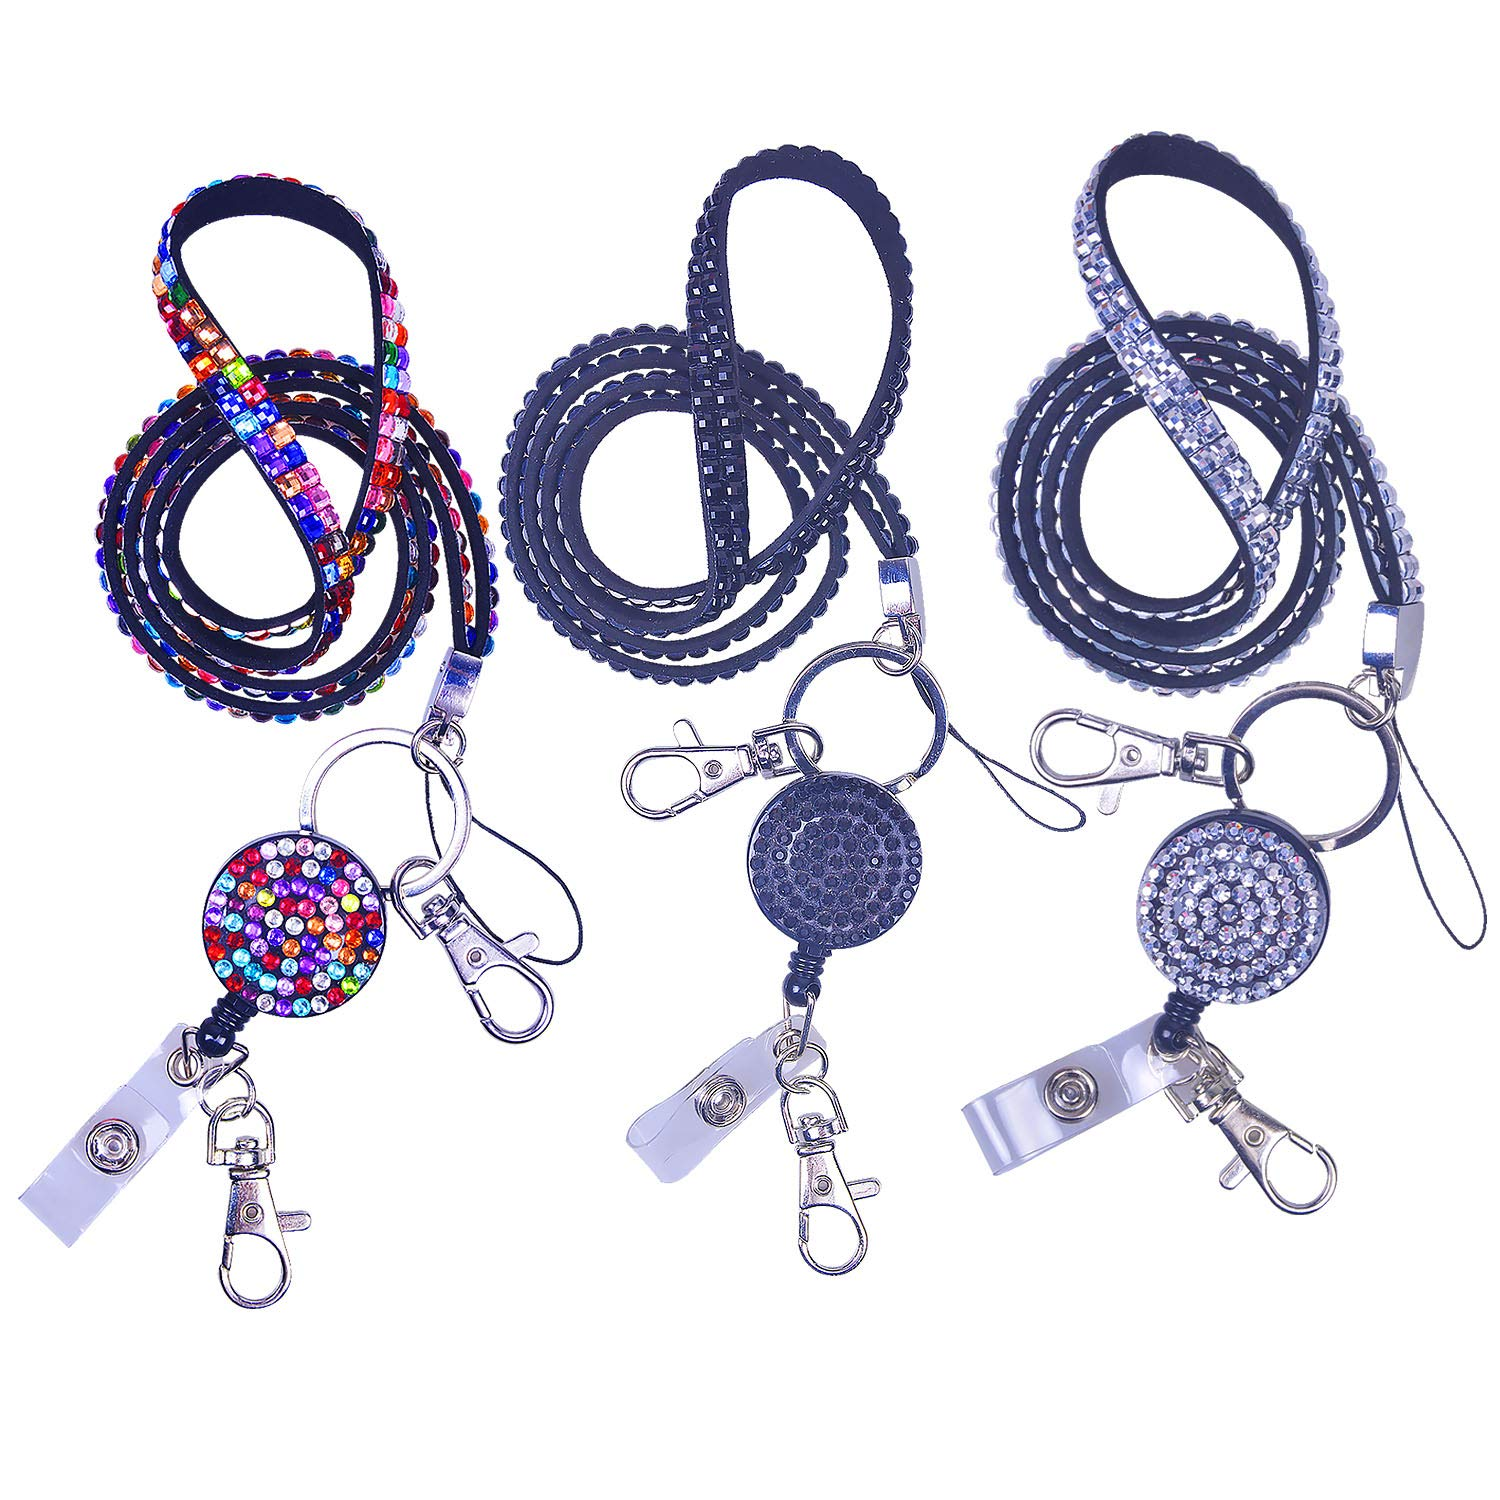 Rancco Phone Neck Strap Lanyard w/Retractable Badge Holder Alligator Clip, Bling Rhinestones Detachable Name Tag Keychain Necklace for iPhone, ID Badge Holder,USB Flash Drive,3 Colors,21 inch